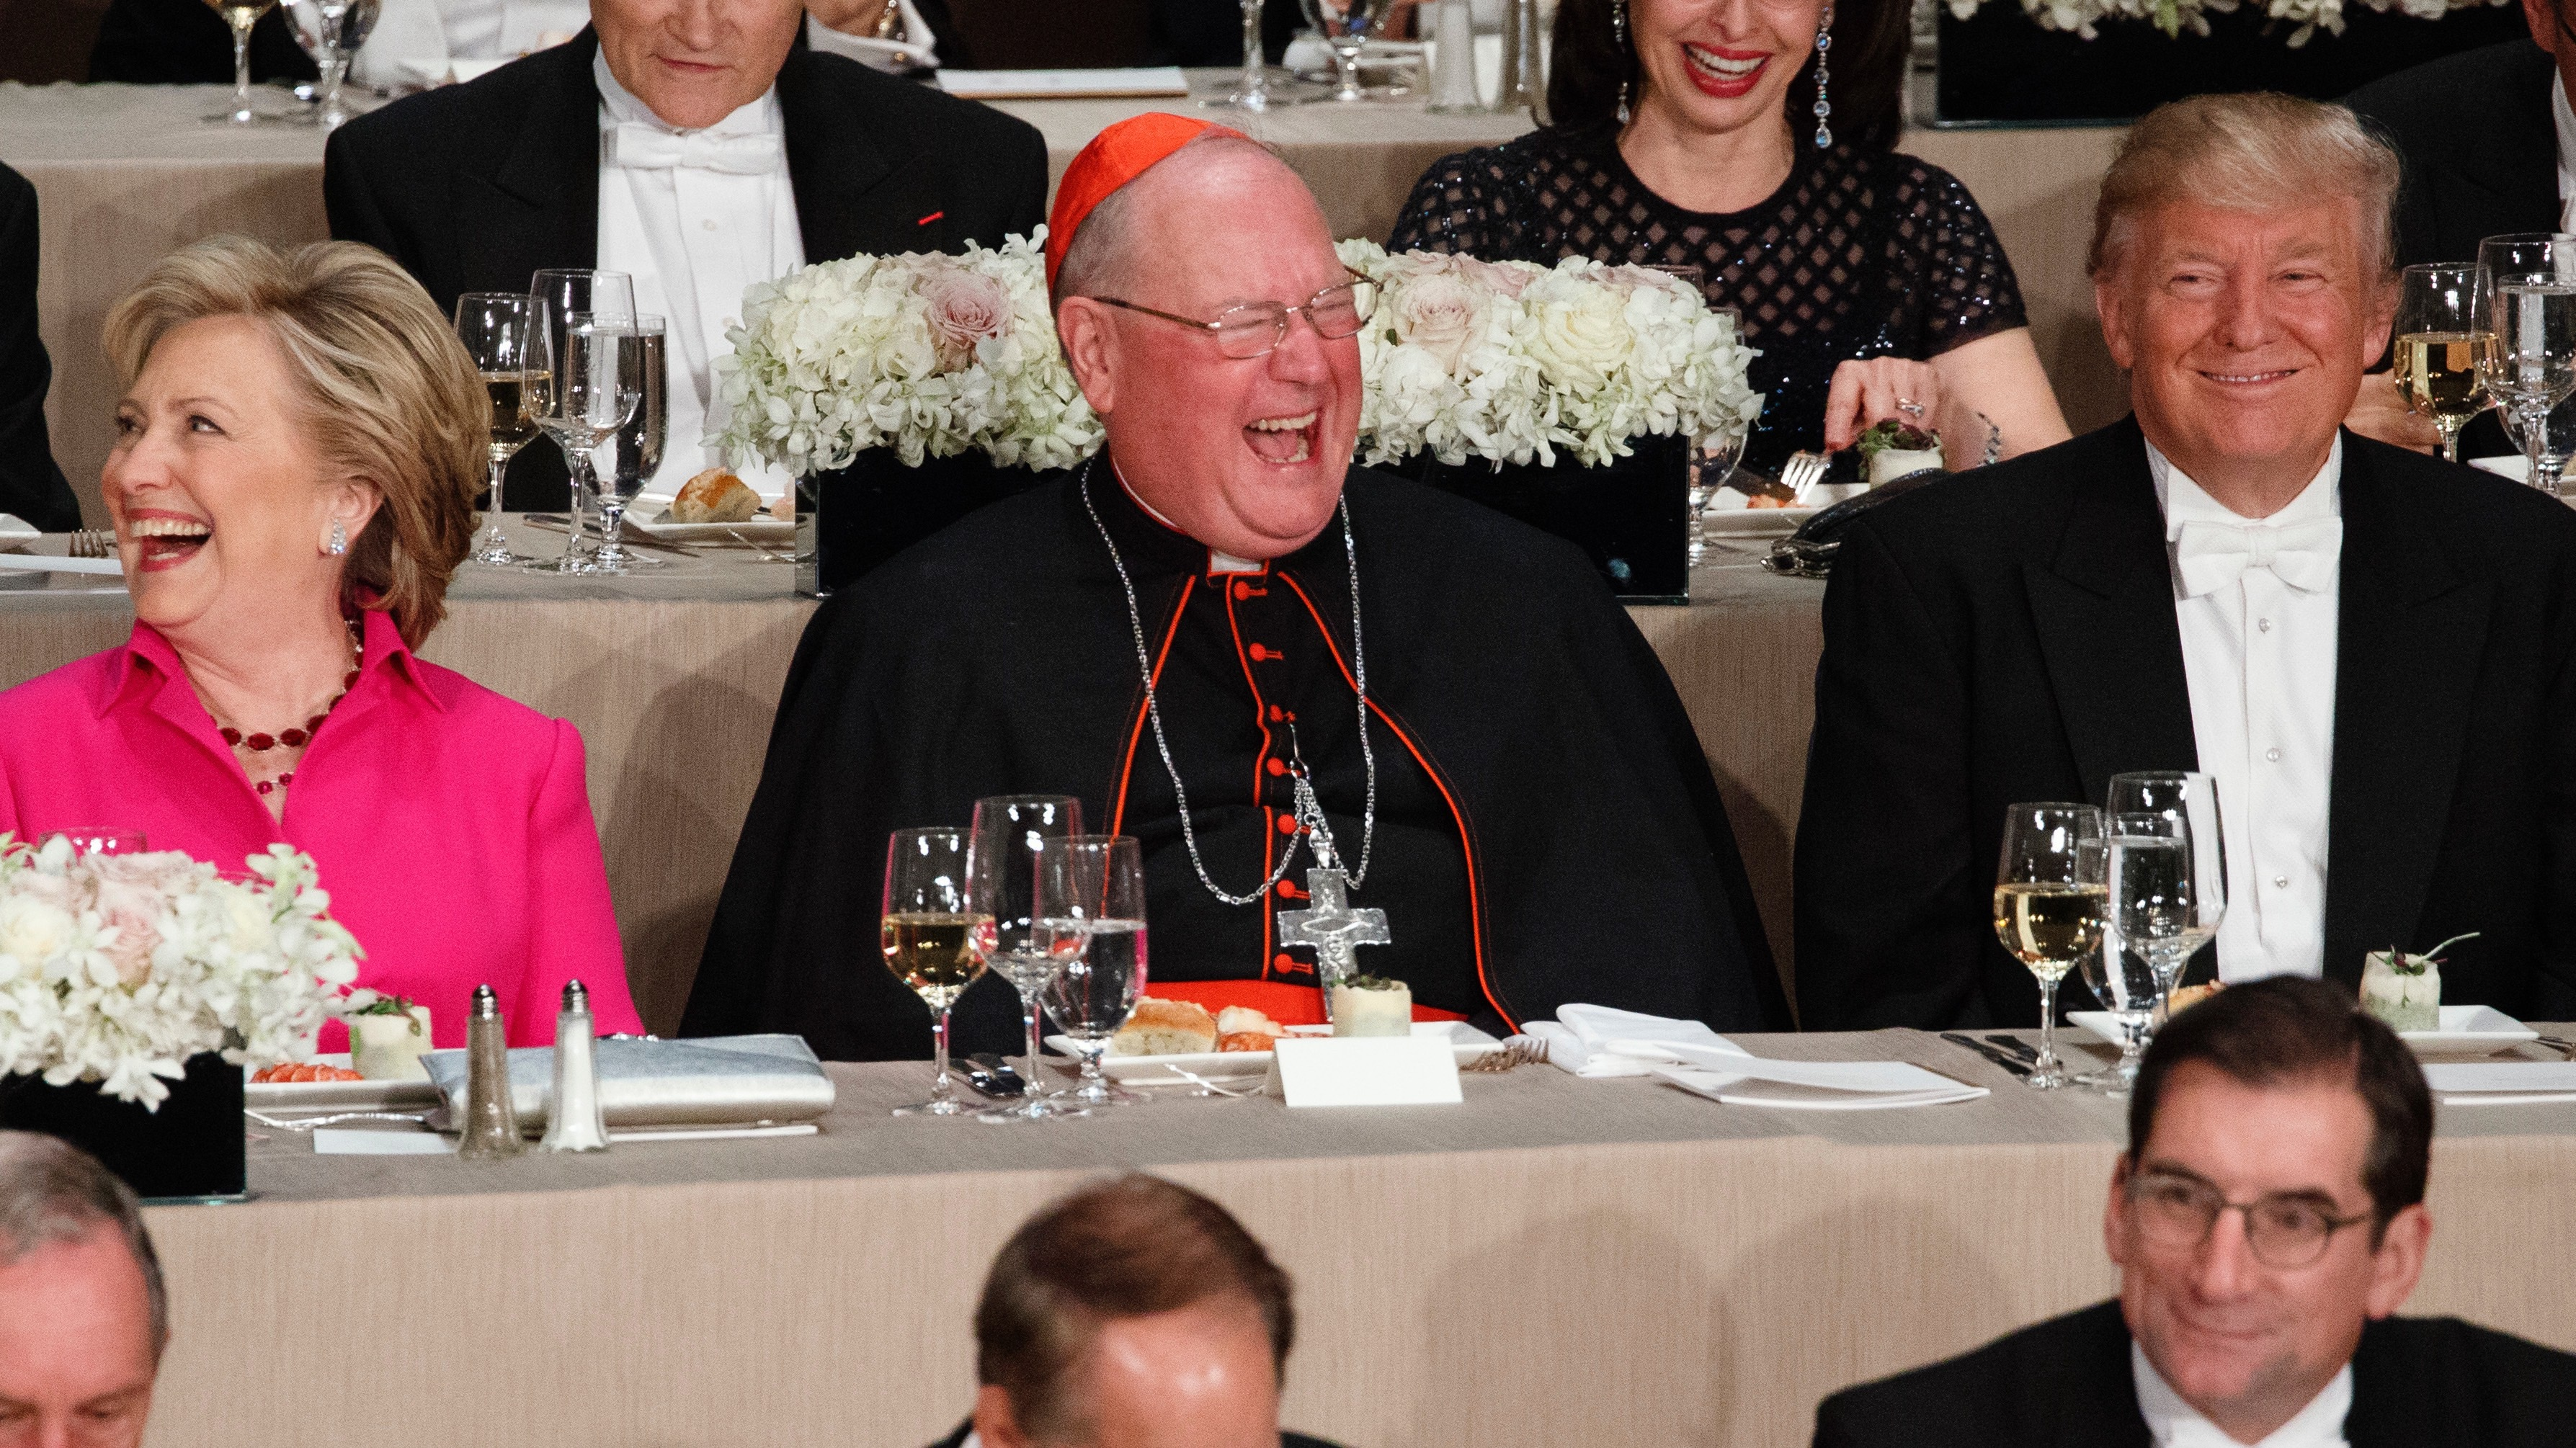 Republican presidential candidate Donald Trump, right, laughs at a joke with Cardinal Timothy Dolan, center, and Democratic presidential candidate Hillary Clinton during the Alfred E. Smith Memorial Foundation dinner, Thursday, Oct. 20, 2016, in New York. (AP Photo/ Evan Vucci)